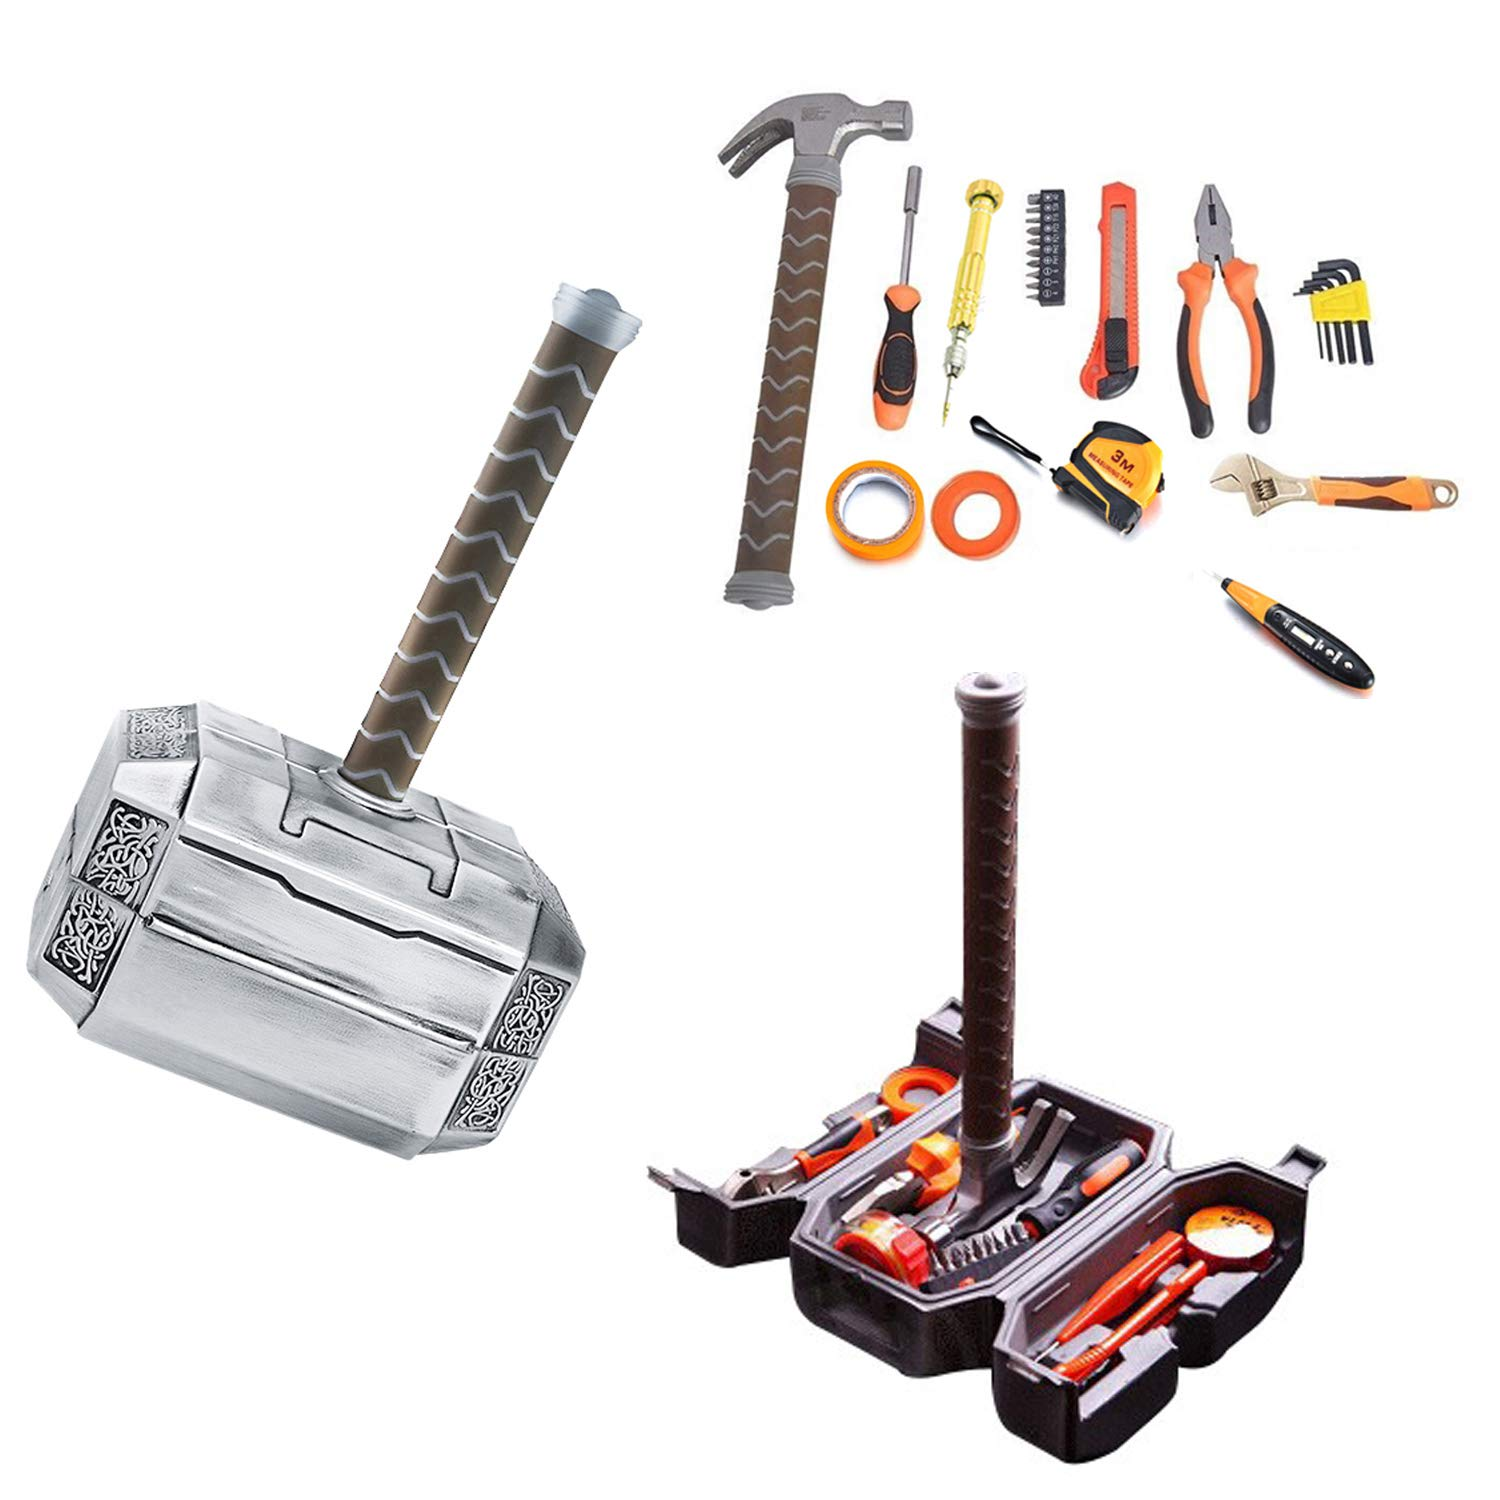 2019 THOR Hammer Tool Set Home Tool Kit Plastic Not Metle Not Contain Knif  And Test Pencal From Bdauto, $134.83 | DHgate.Com